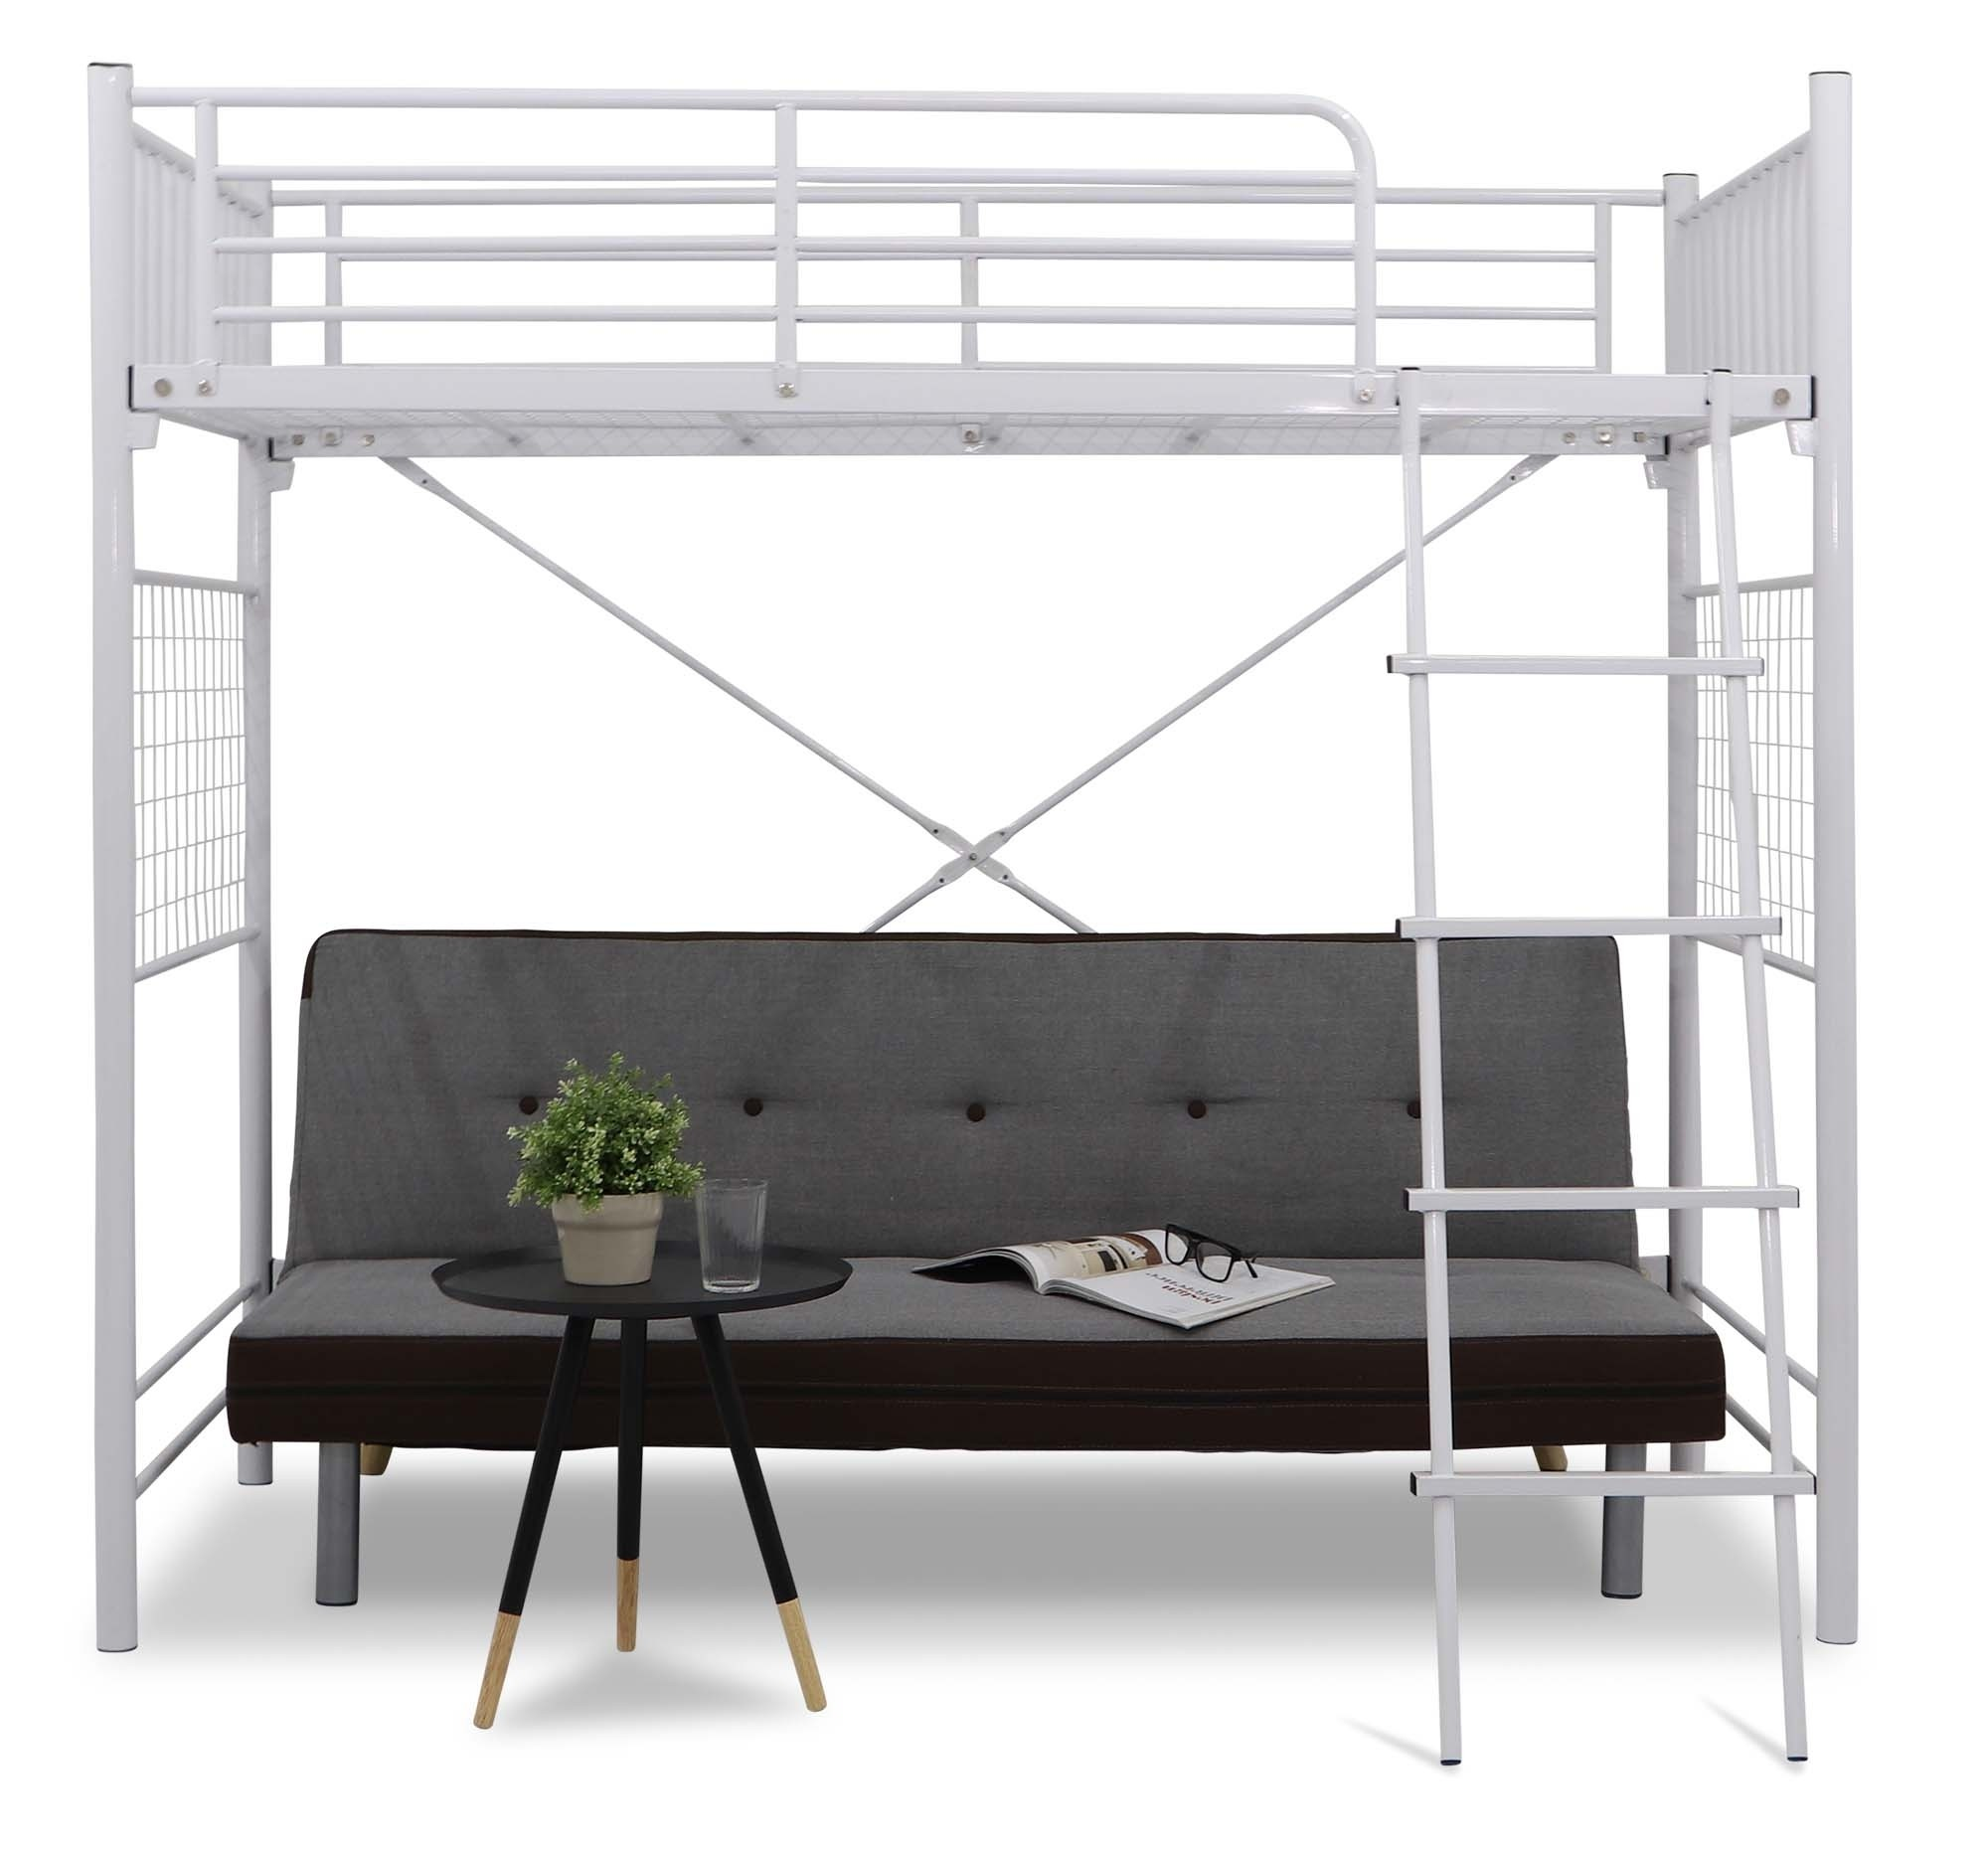 Vitoy Metal Single Size Loft Bed Furniture Home Decor Fortytwo